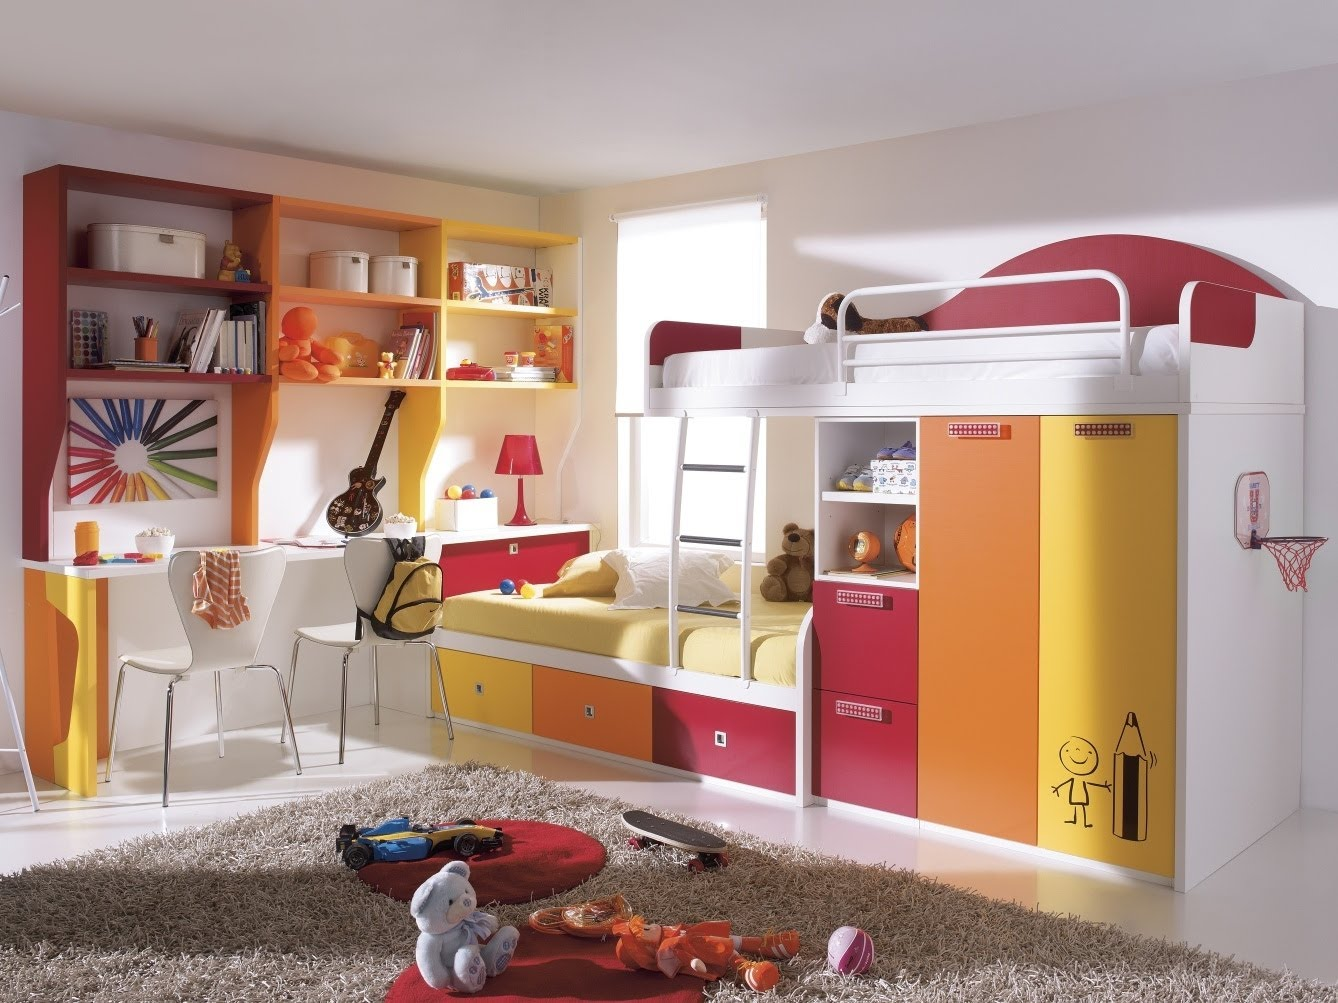 built-in-double-bunk-beds-u363yqdp6